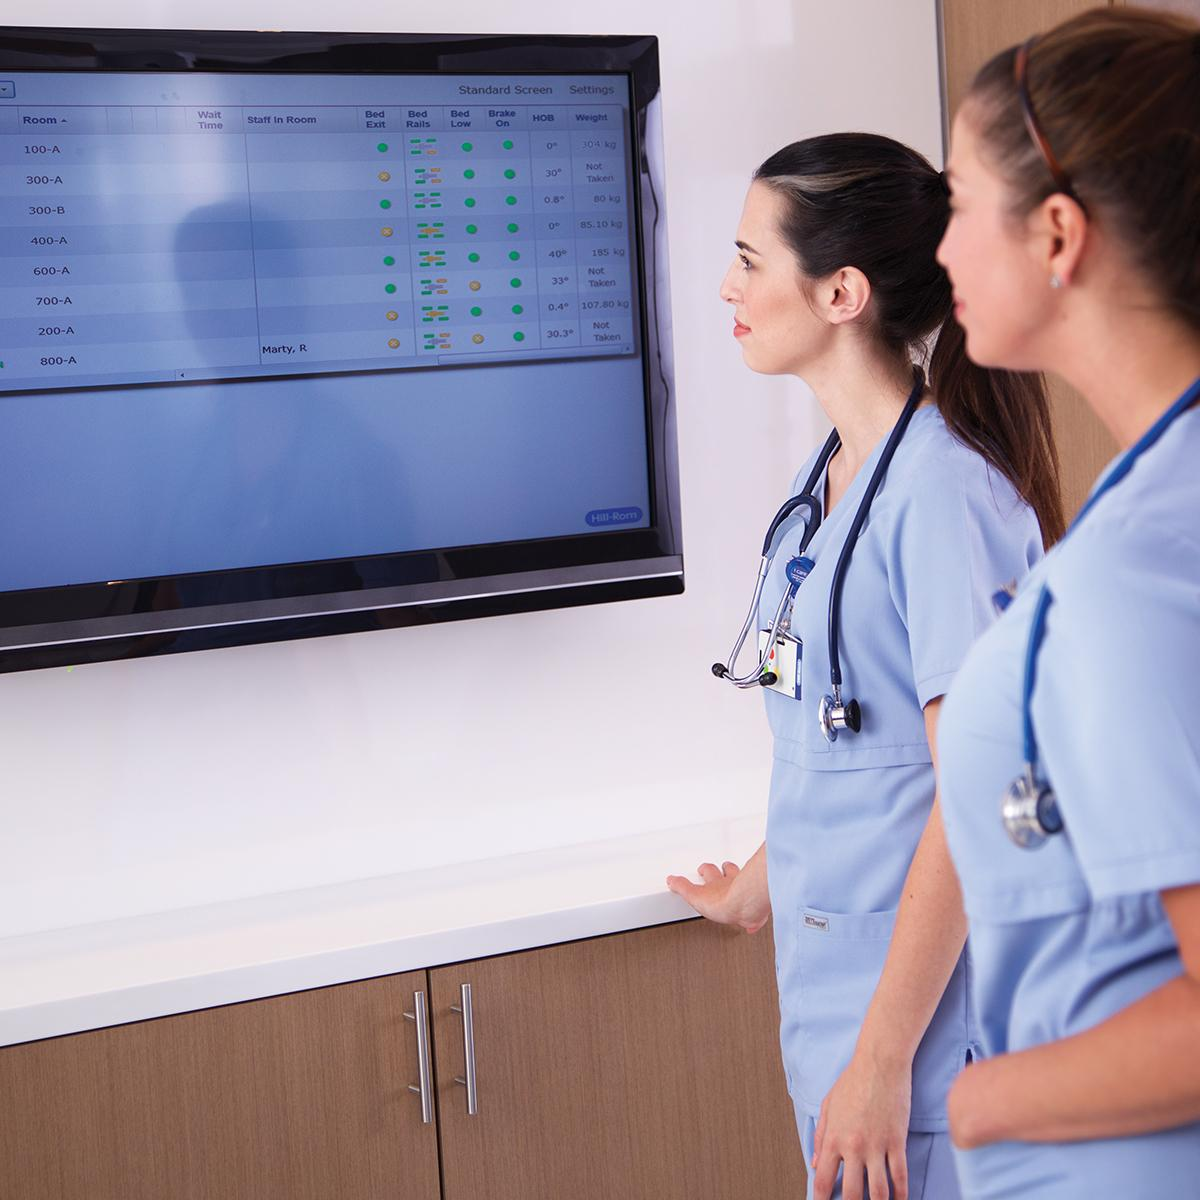 Two nurses looking at a large wall-mounted screen